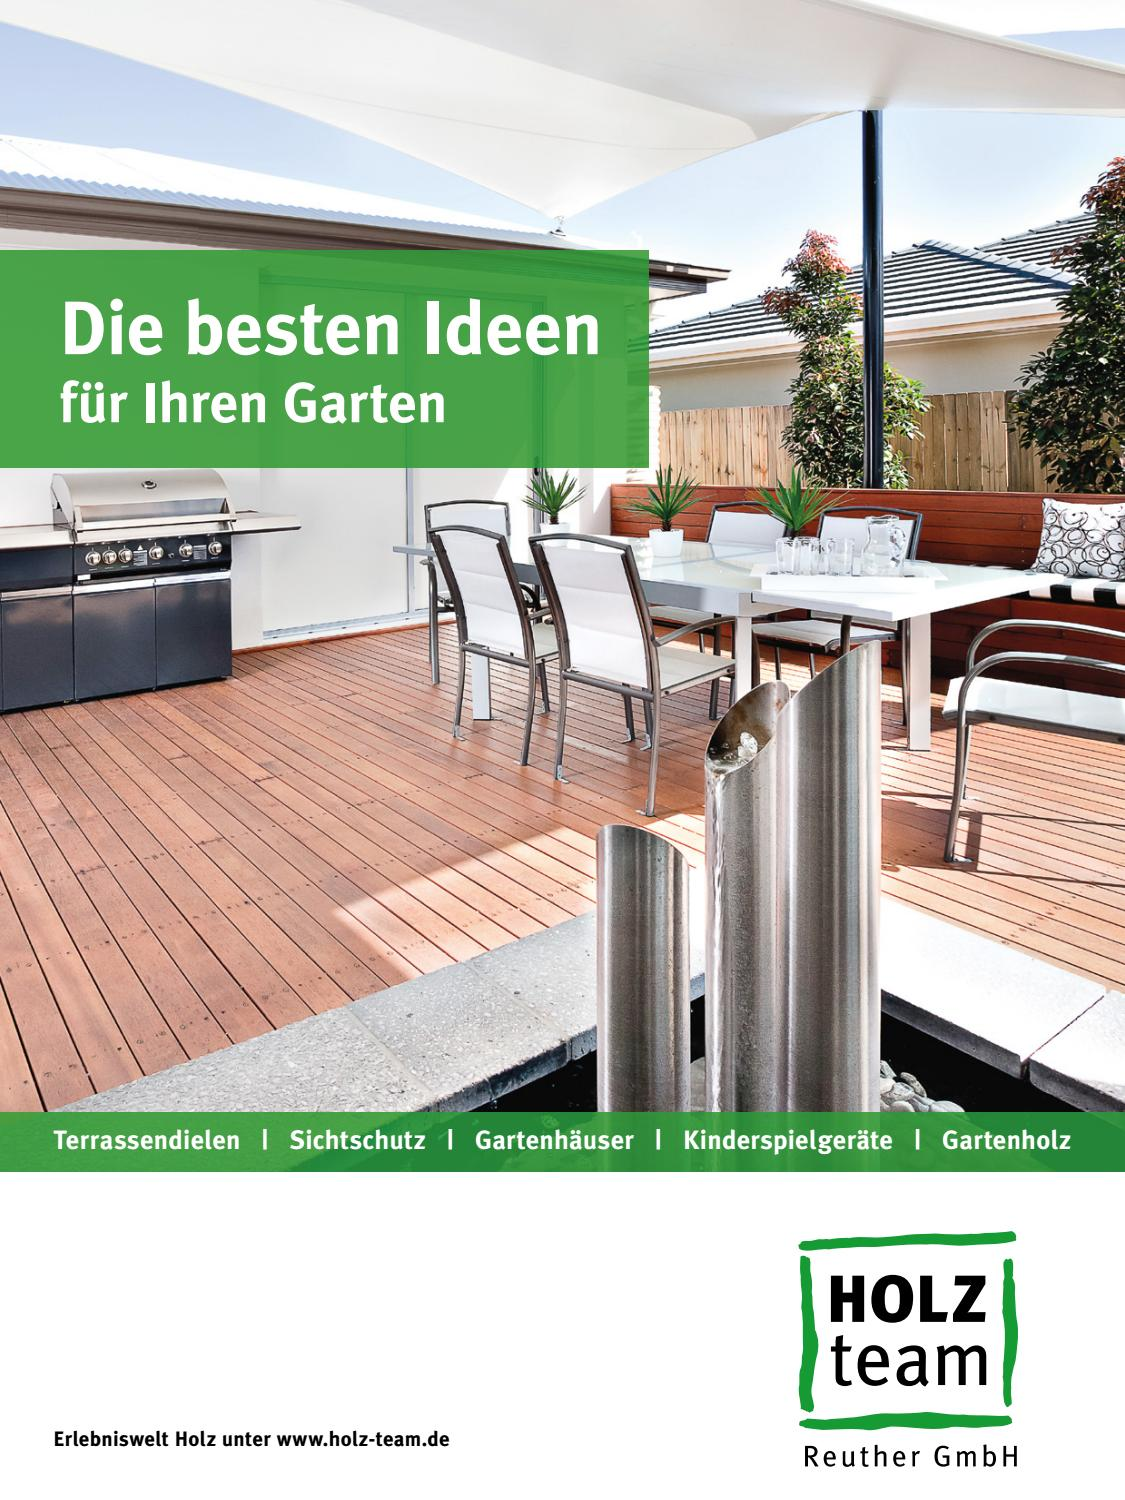 Ibiza Treibholz Möbel Holz Team Reuther Outdoor 2017 By Kaiser Design Issuu